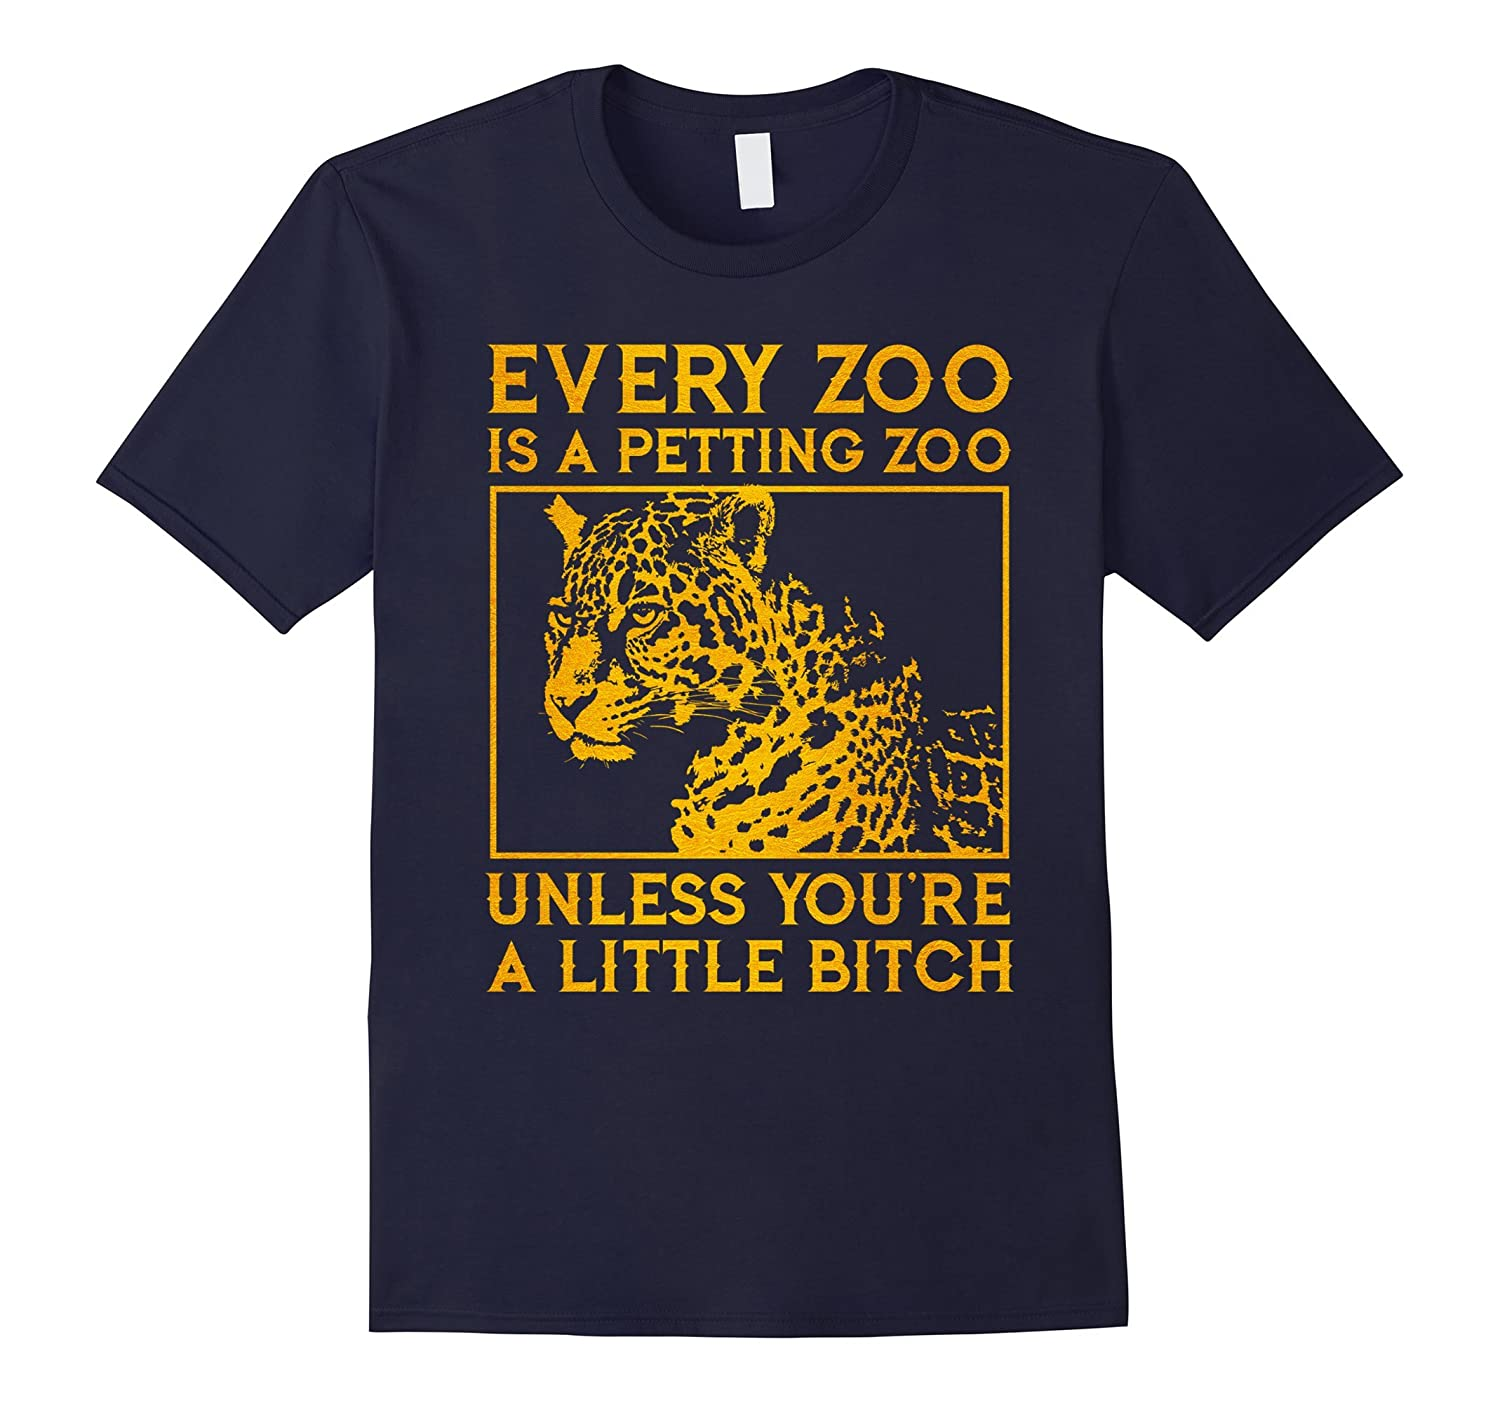 Every zoo is a petting zoo T-Shirt-Vaci